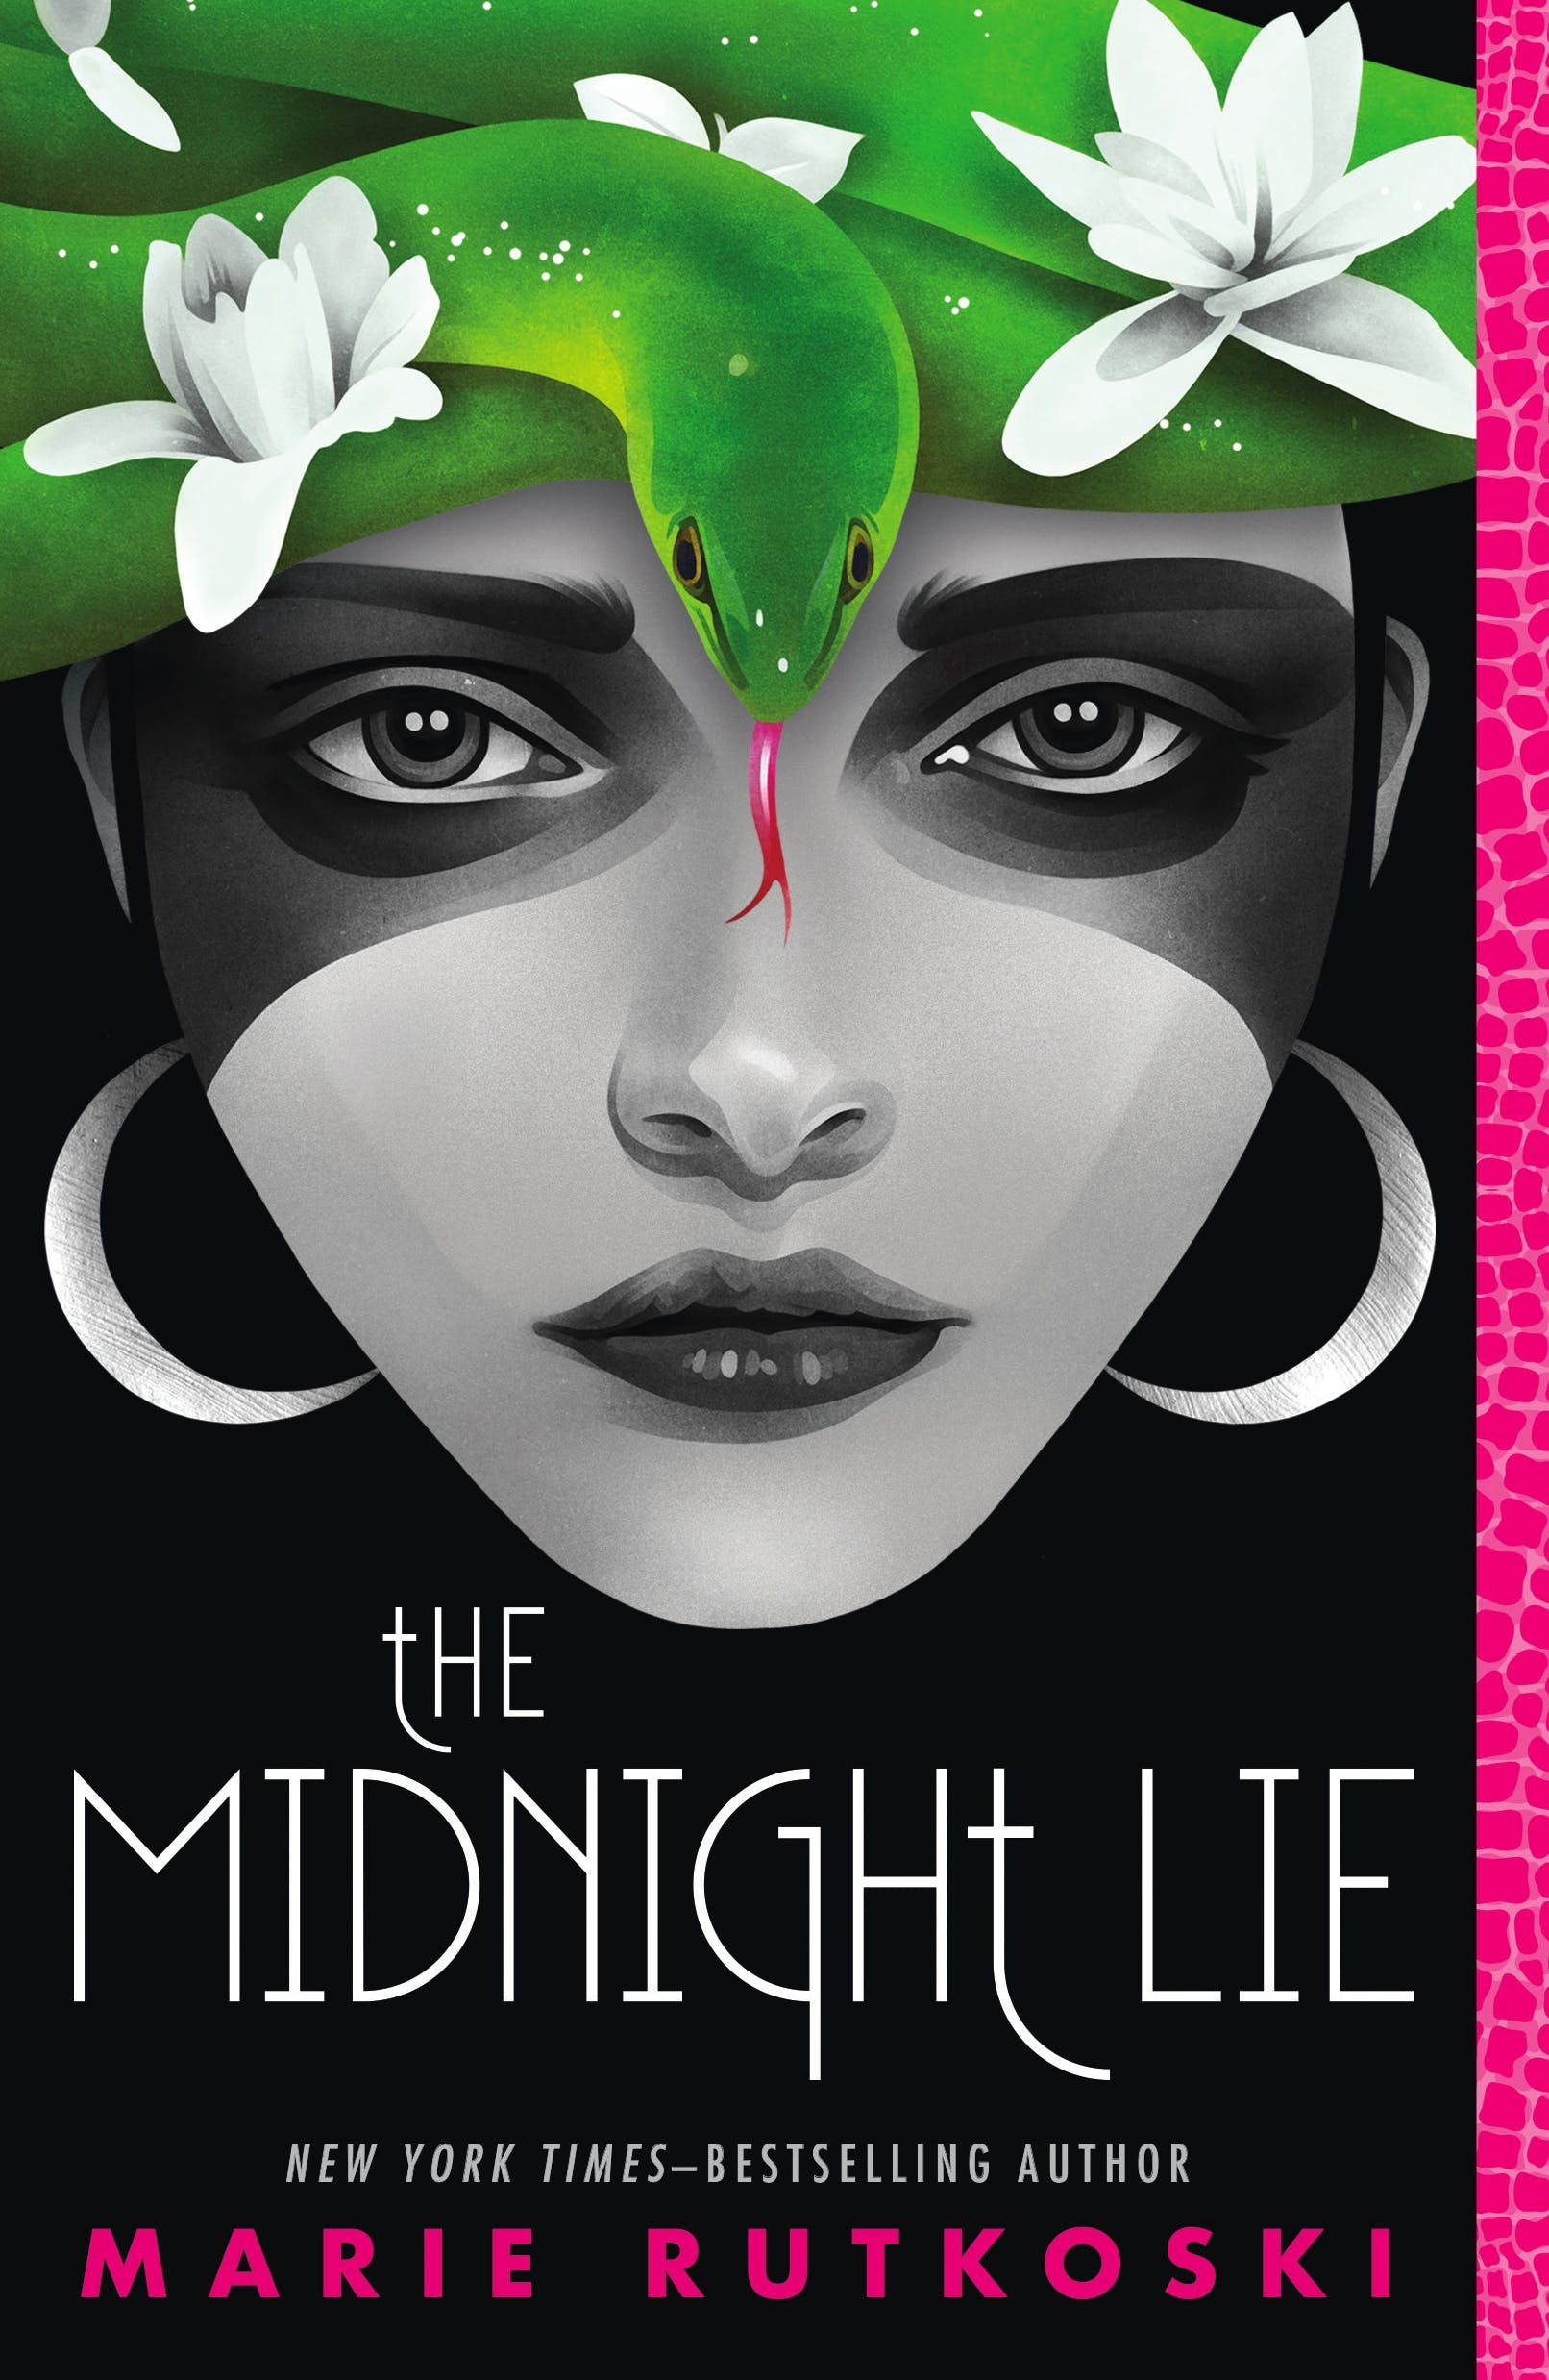 Image of The Midnight Lie